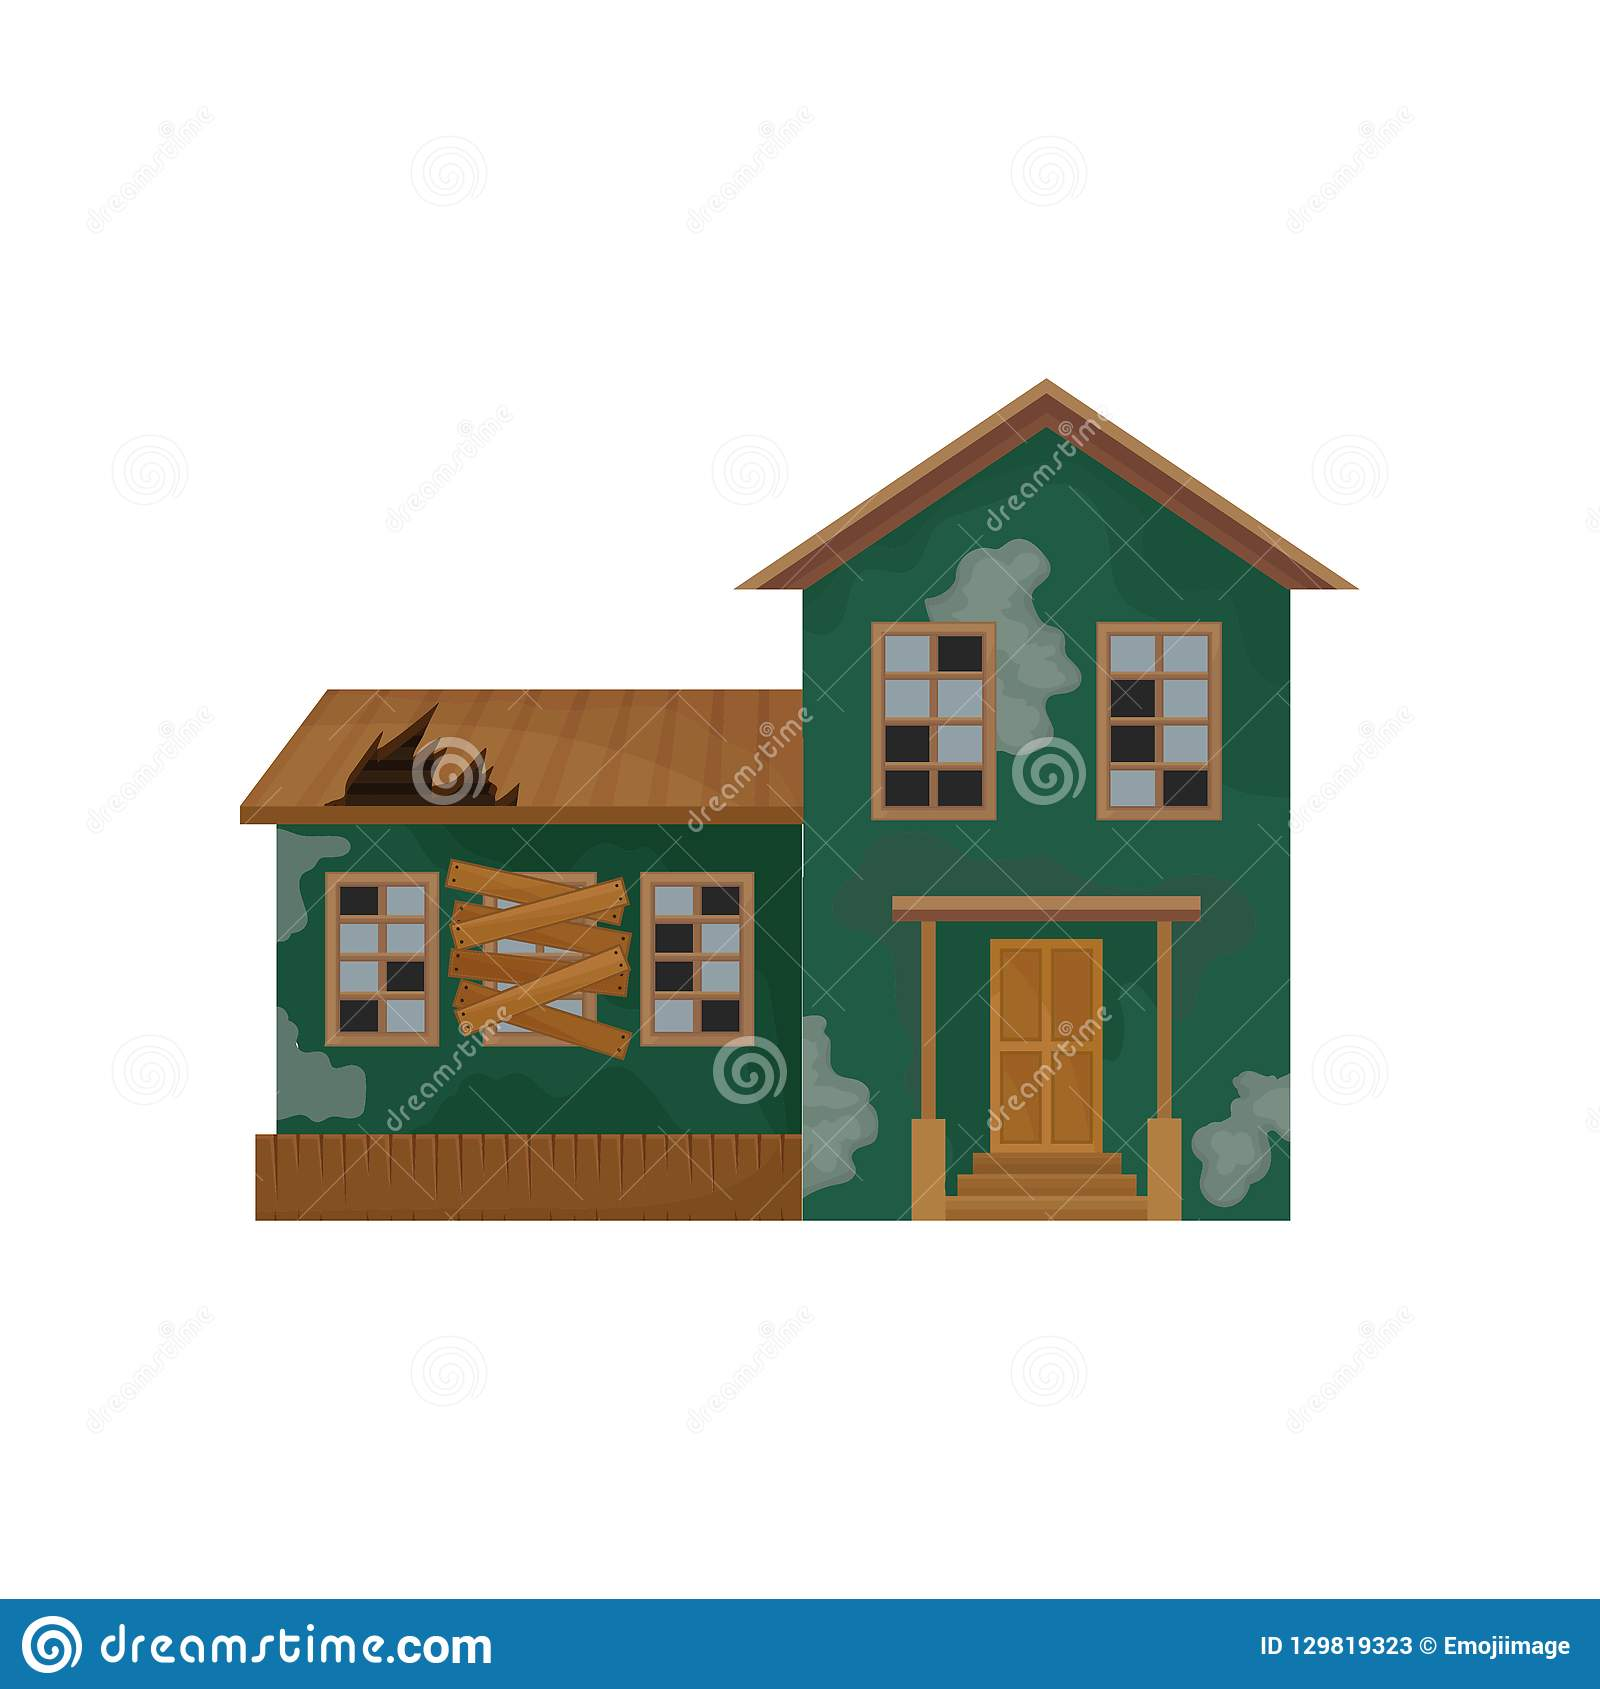 Green House With Peeling Paint Broken Roof And Windows Abandoned Home Private Home Old Building Flat Vector Design Stock Vector Illustration Of Cottage Flat 129819323